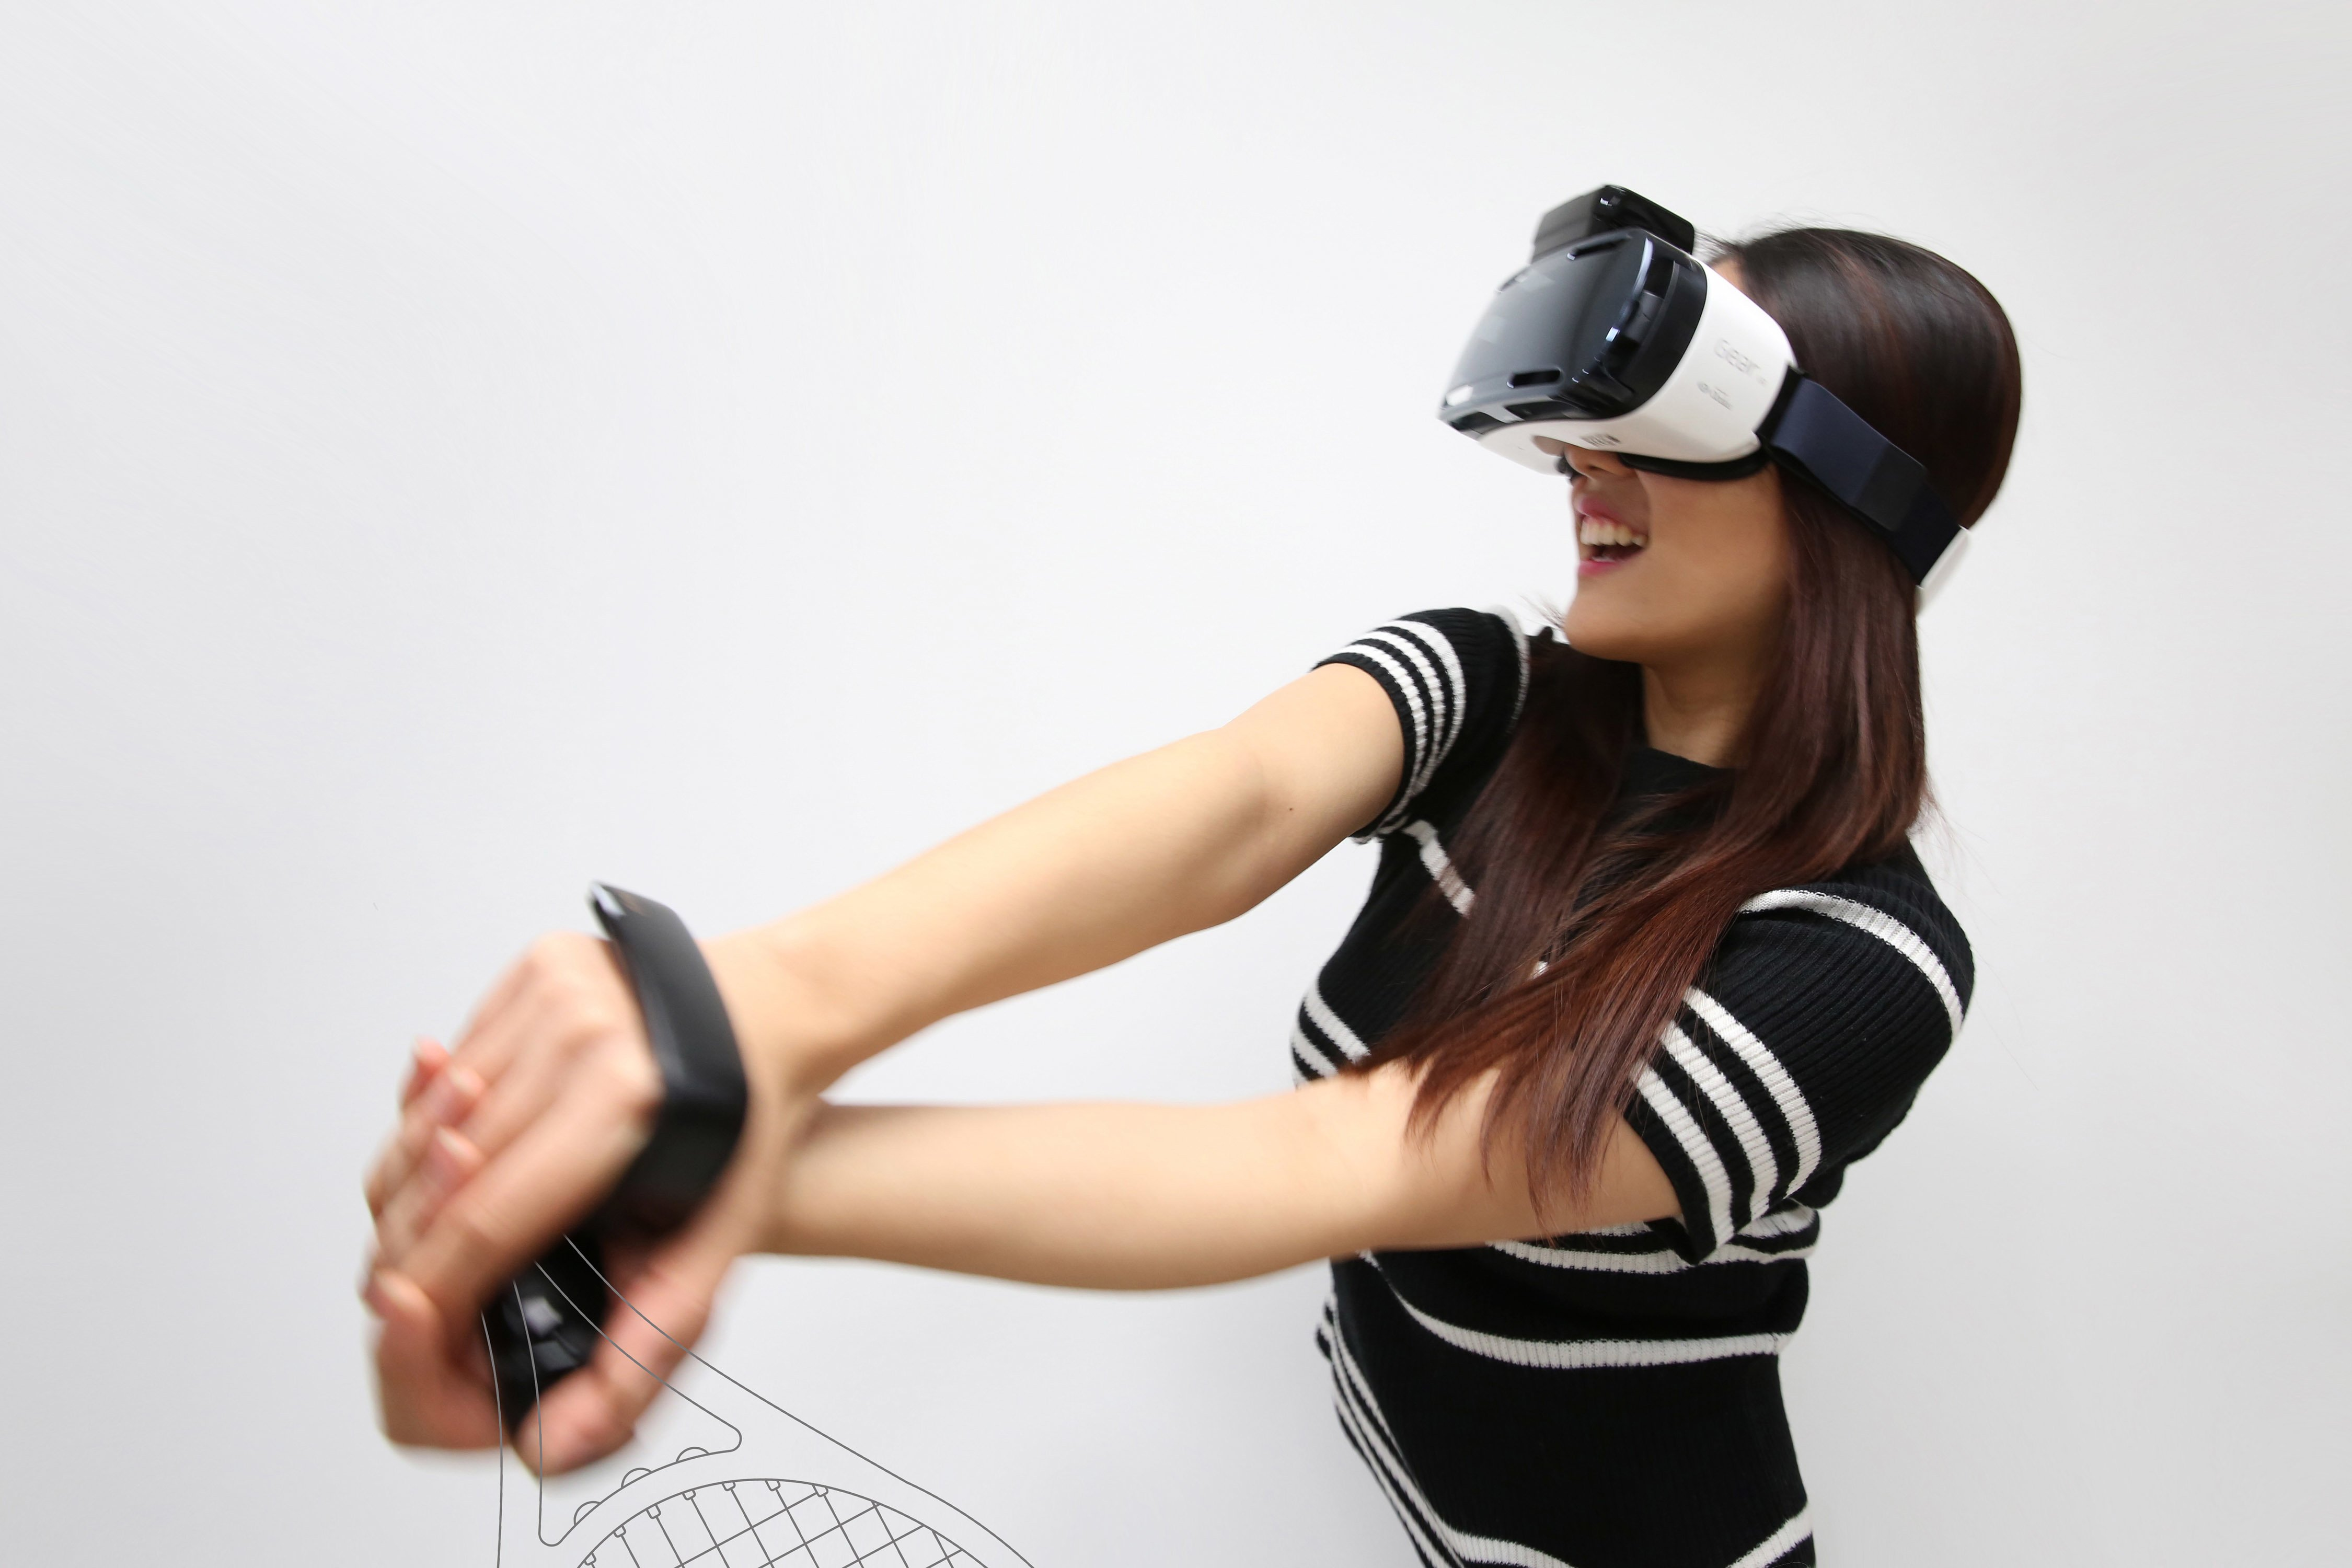 Samsung to Showcase Three Creative Lab Projects for the First Time, At CES 2016